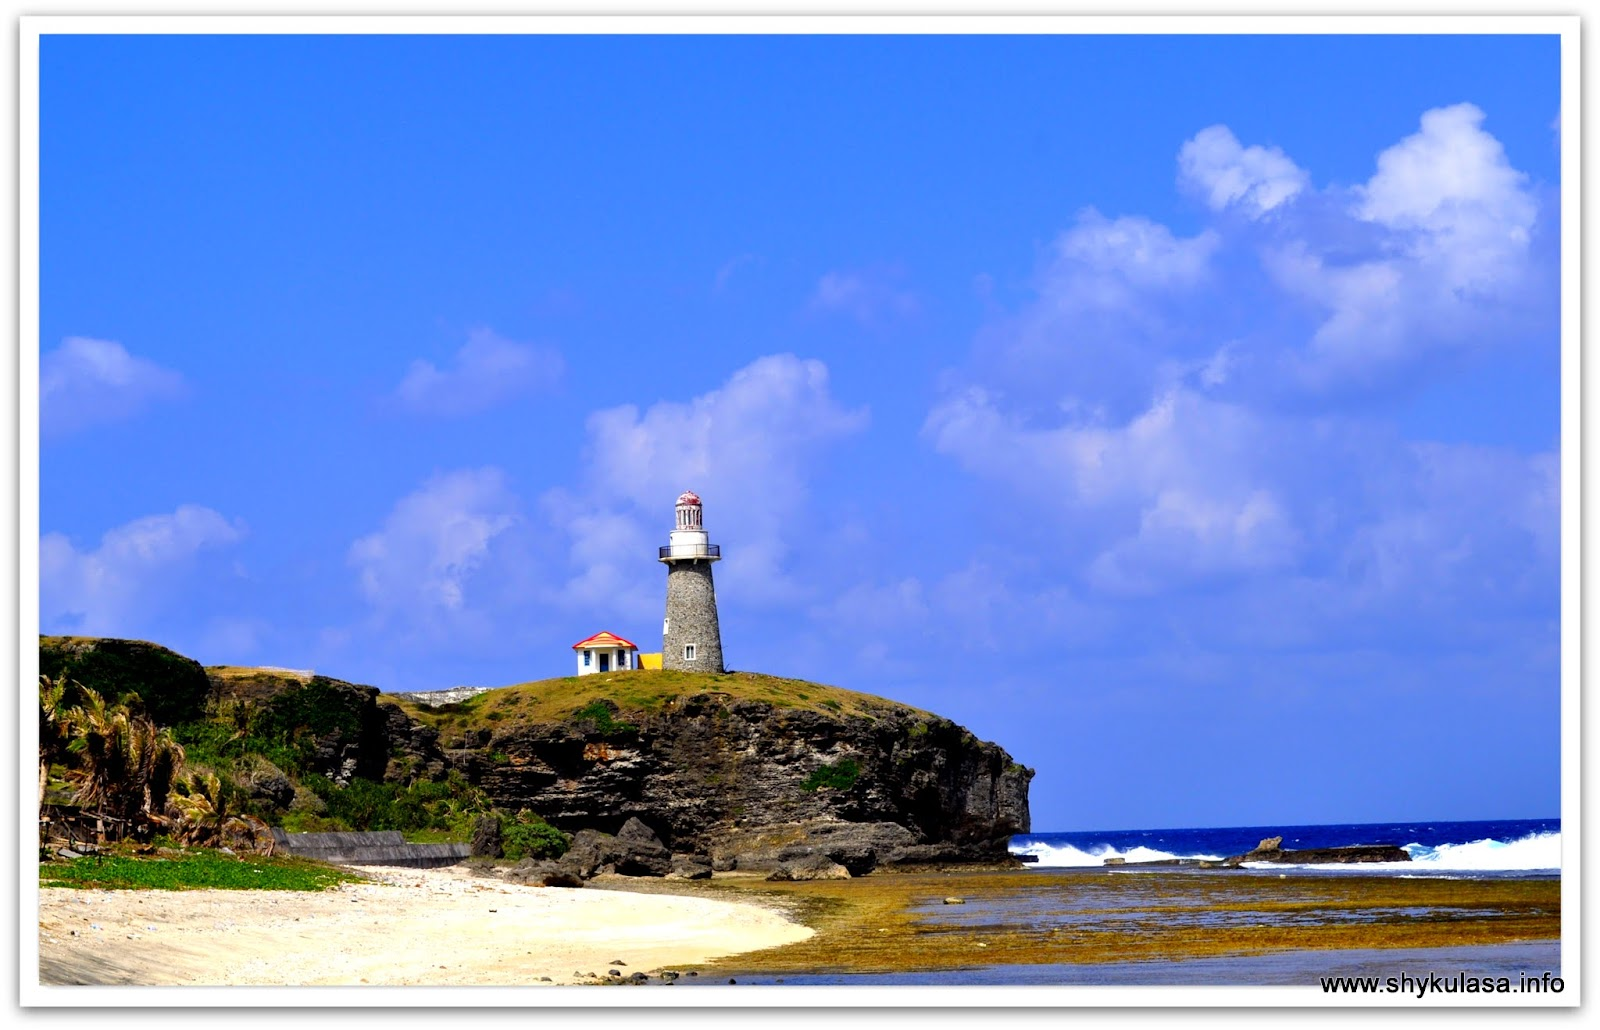 Sabtang Lighthouse, Batanes